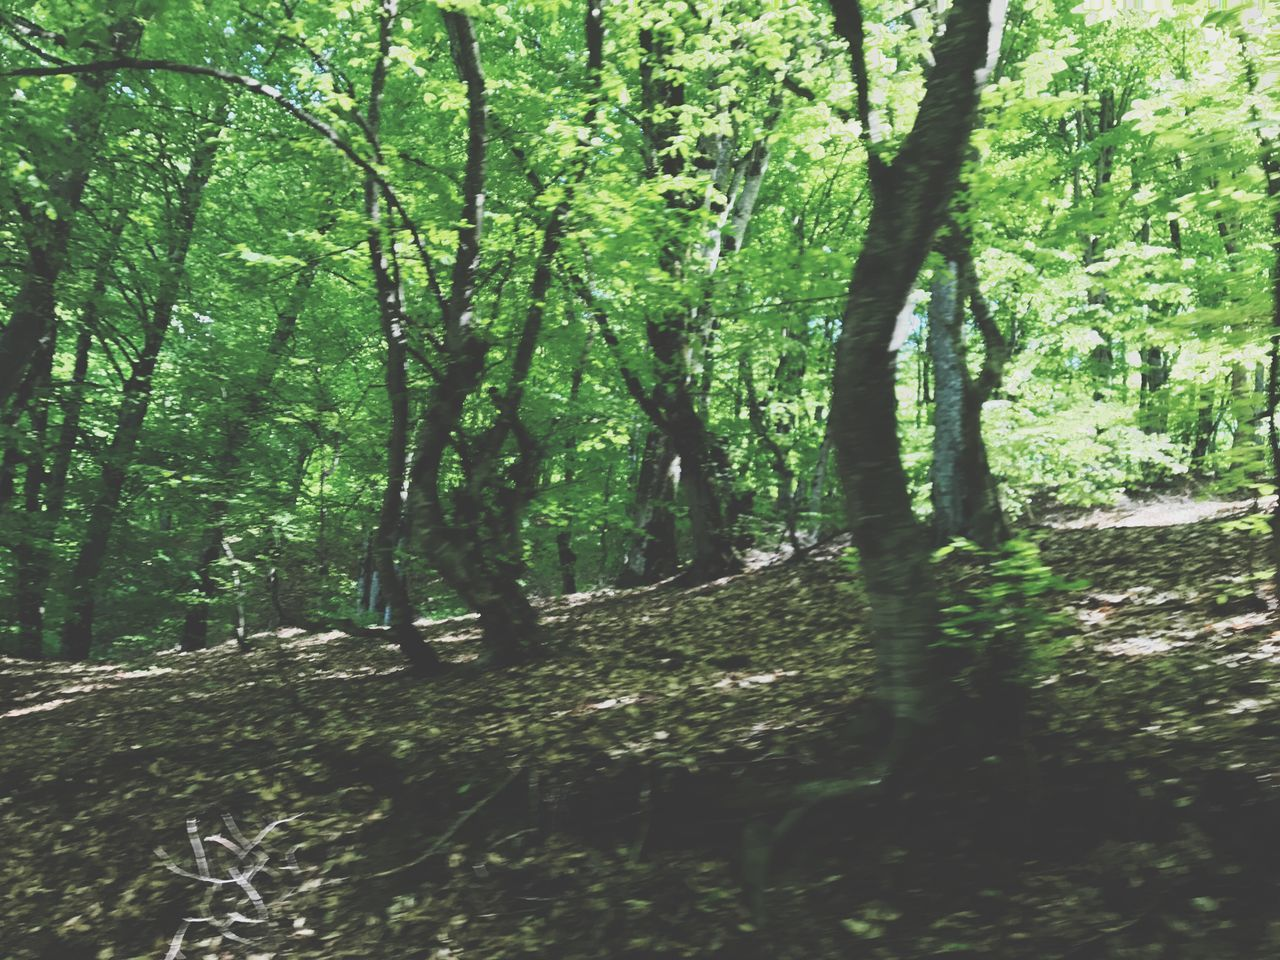 nature, tree, tranquility, forest, beauty in nature, tree trunk, tranquil scene, day, scenics, landscape, growth, outdoors, no people